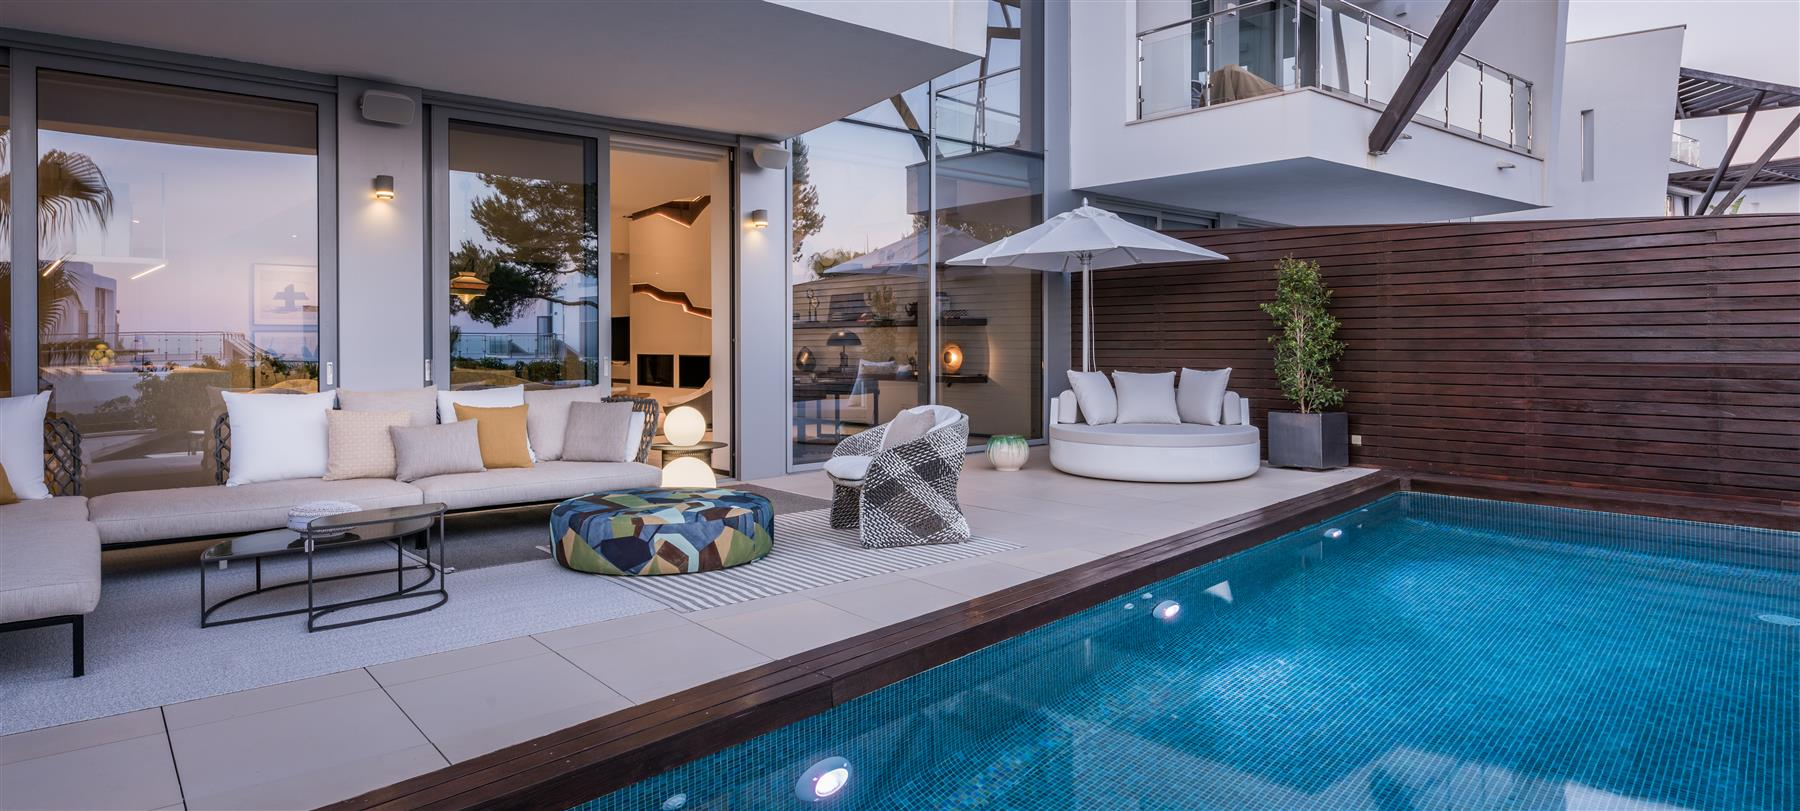 Meisho Hills is an exclusive residential complex, located in Marbella, in the south of Spain.